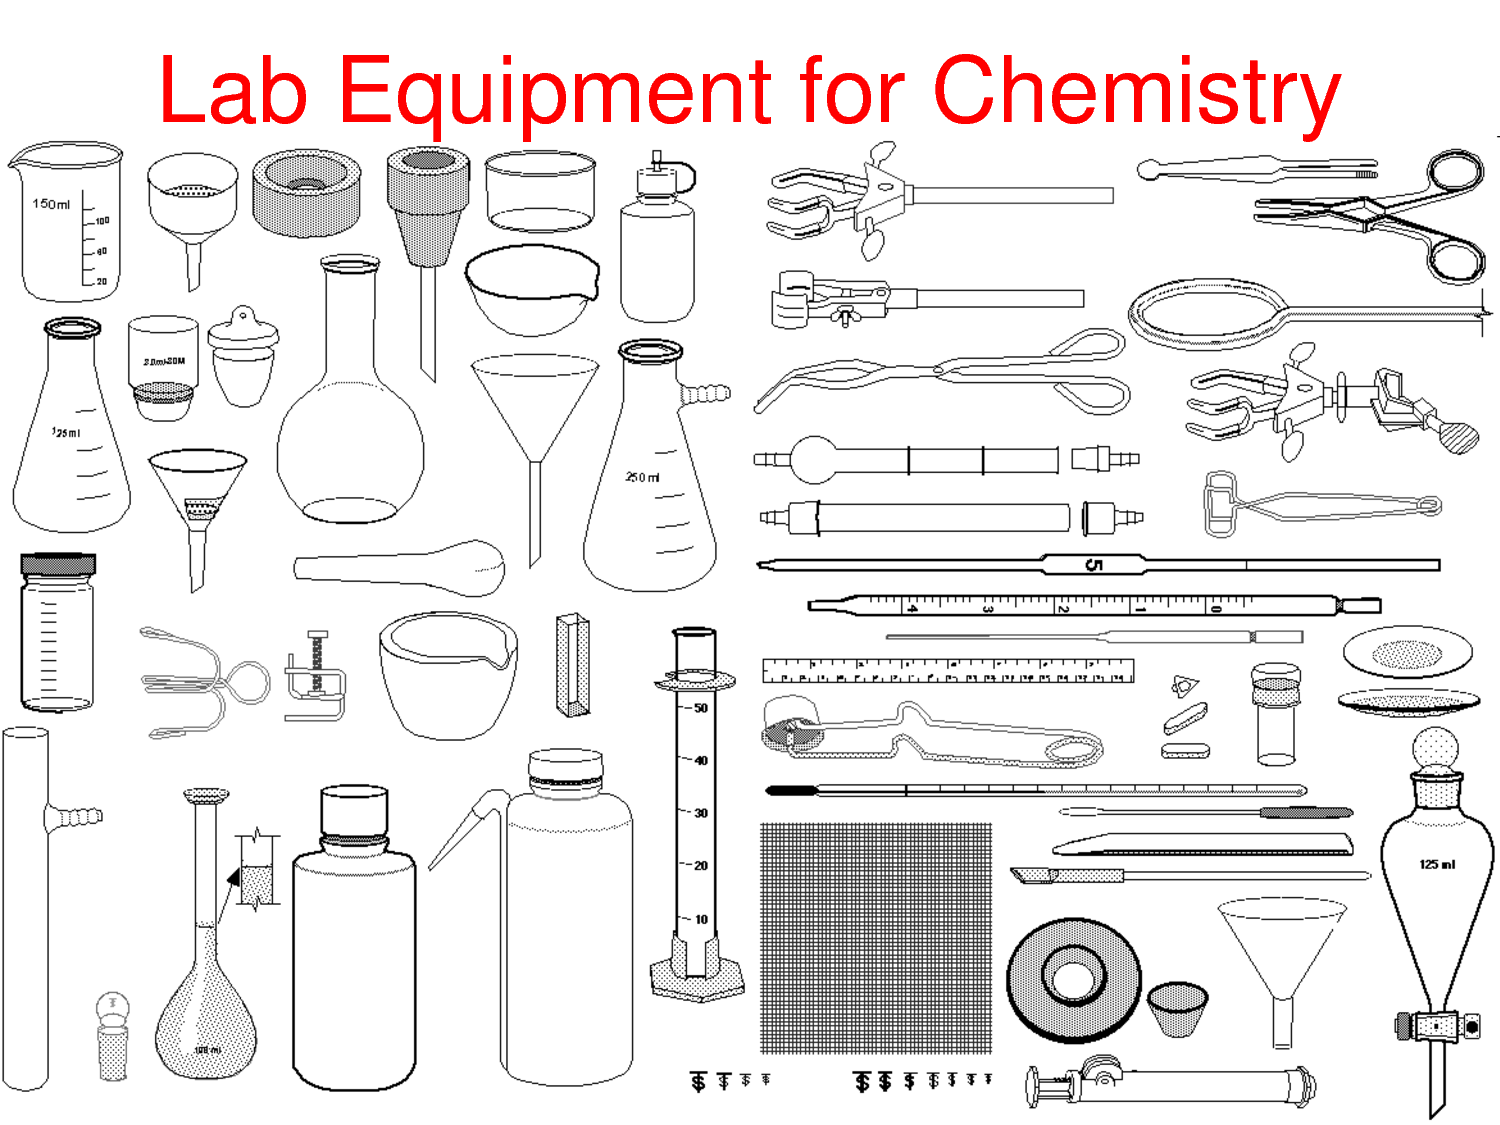 Worksheets Biology Laboratory Equipment Names sabari scientific supplies trivandrum kerala